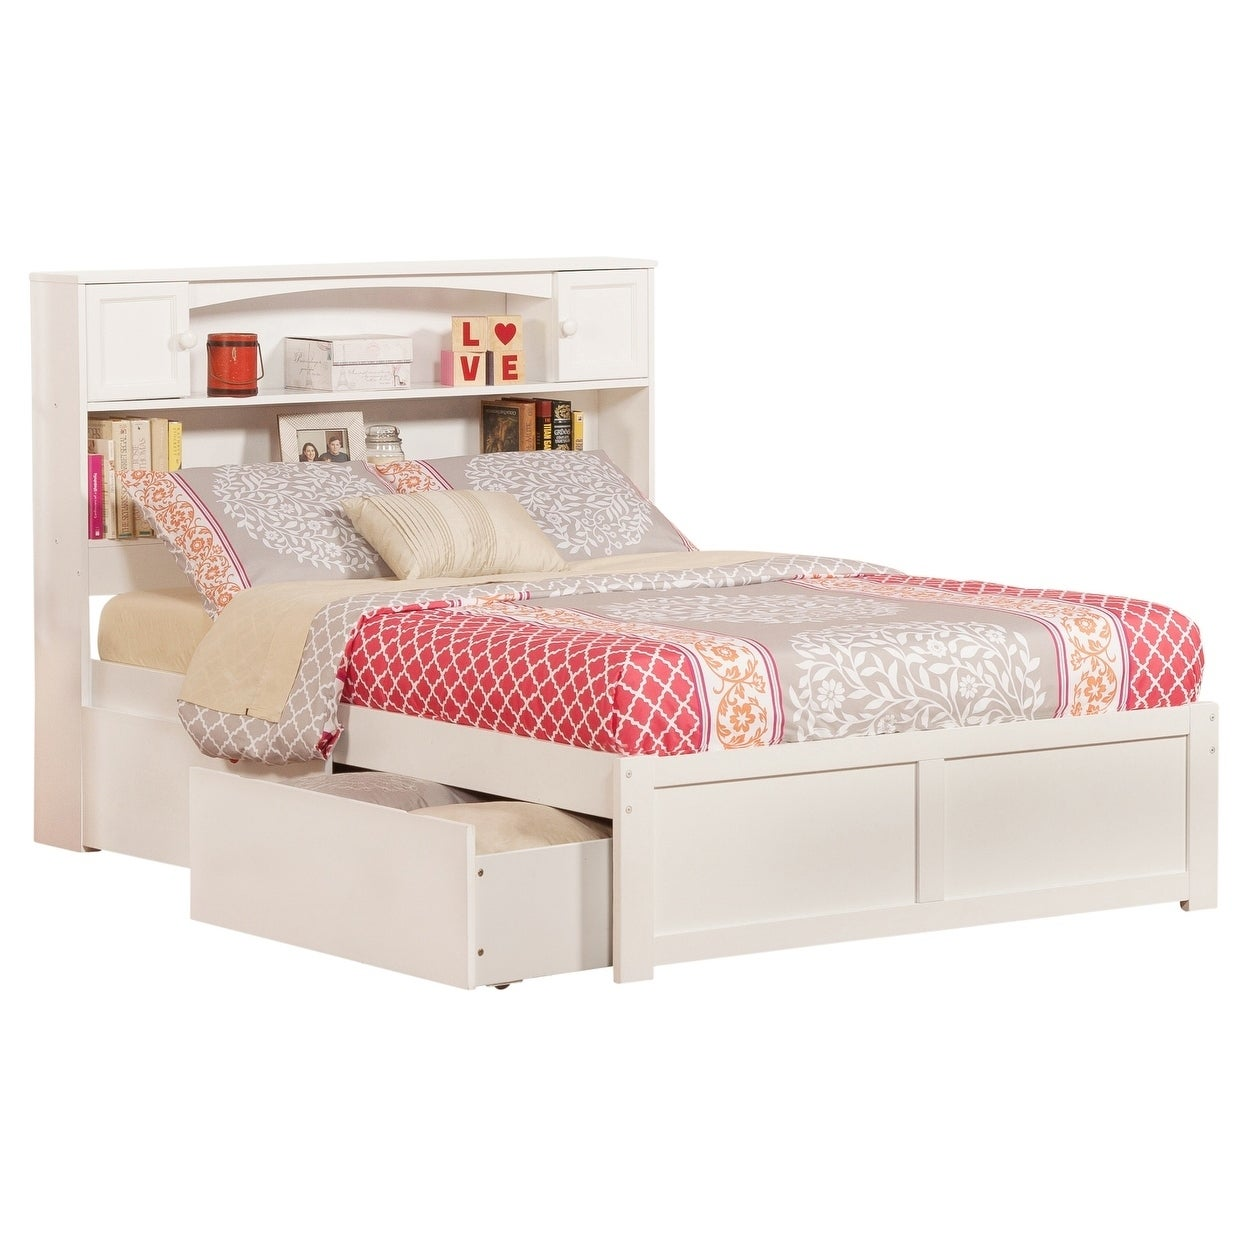 Shop Black Friday Deals On Newport Full Platform Bed With Flat Panel Foot Board And 2 Urban Bed Drawers In White Overstock 12852188